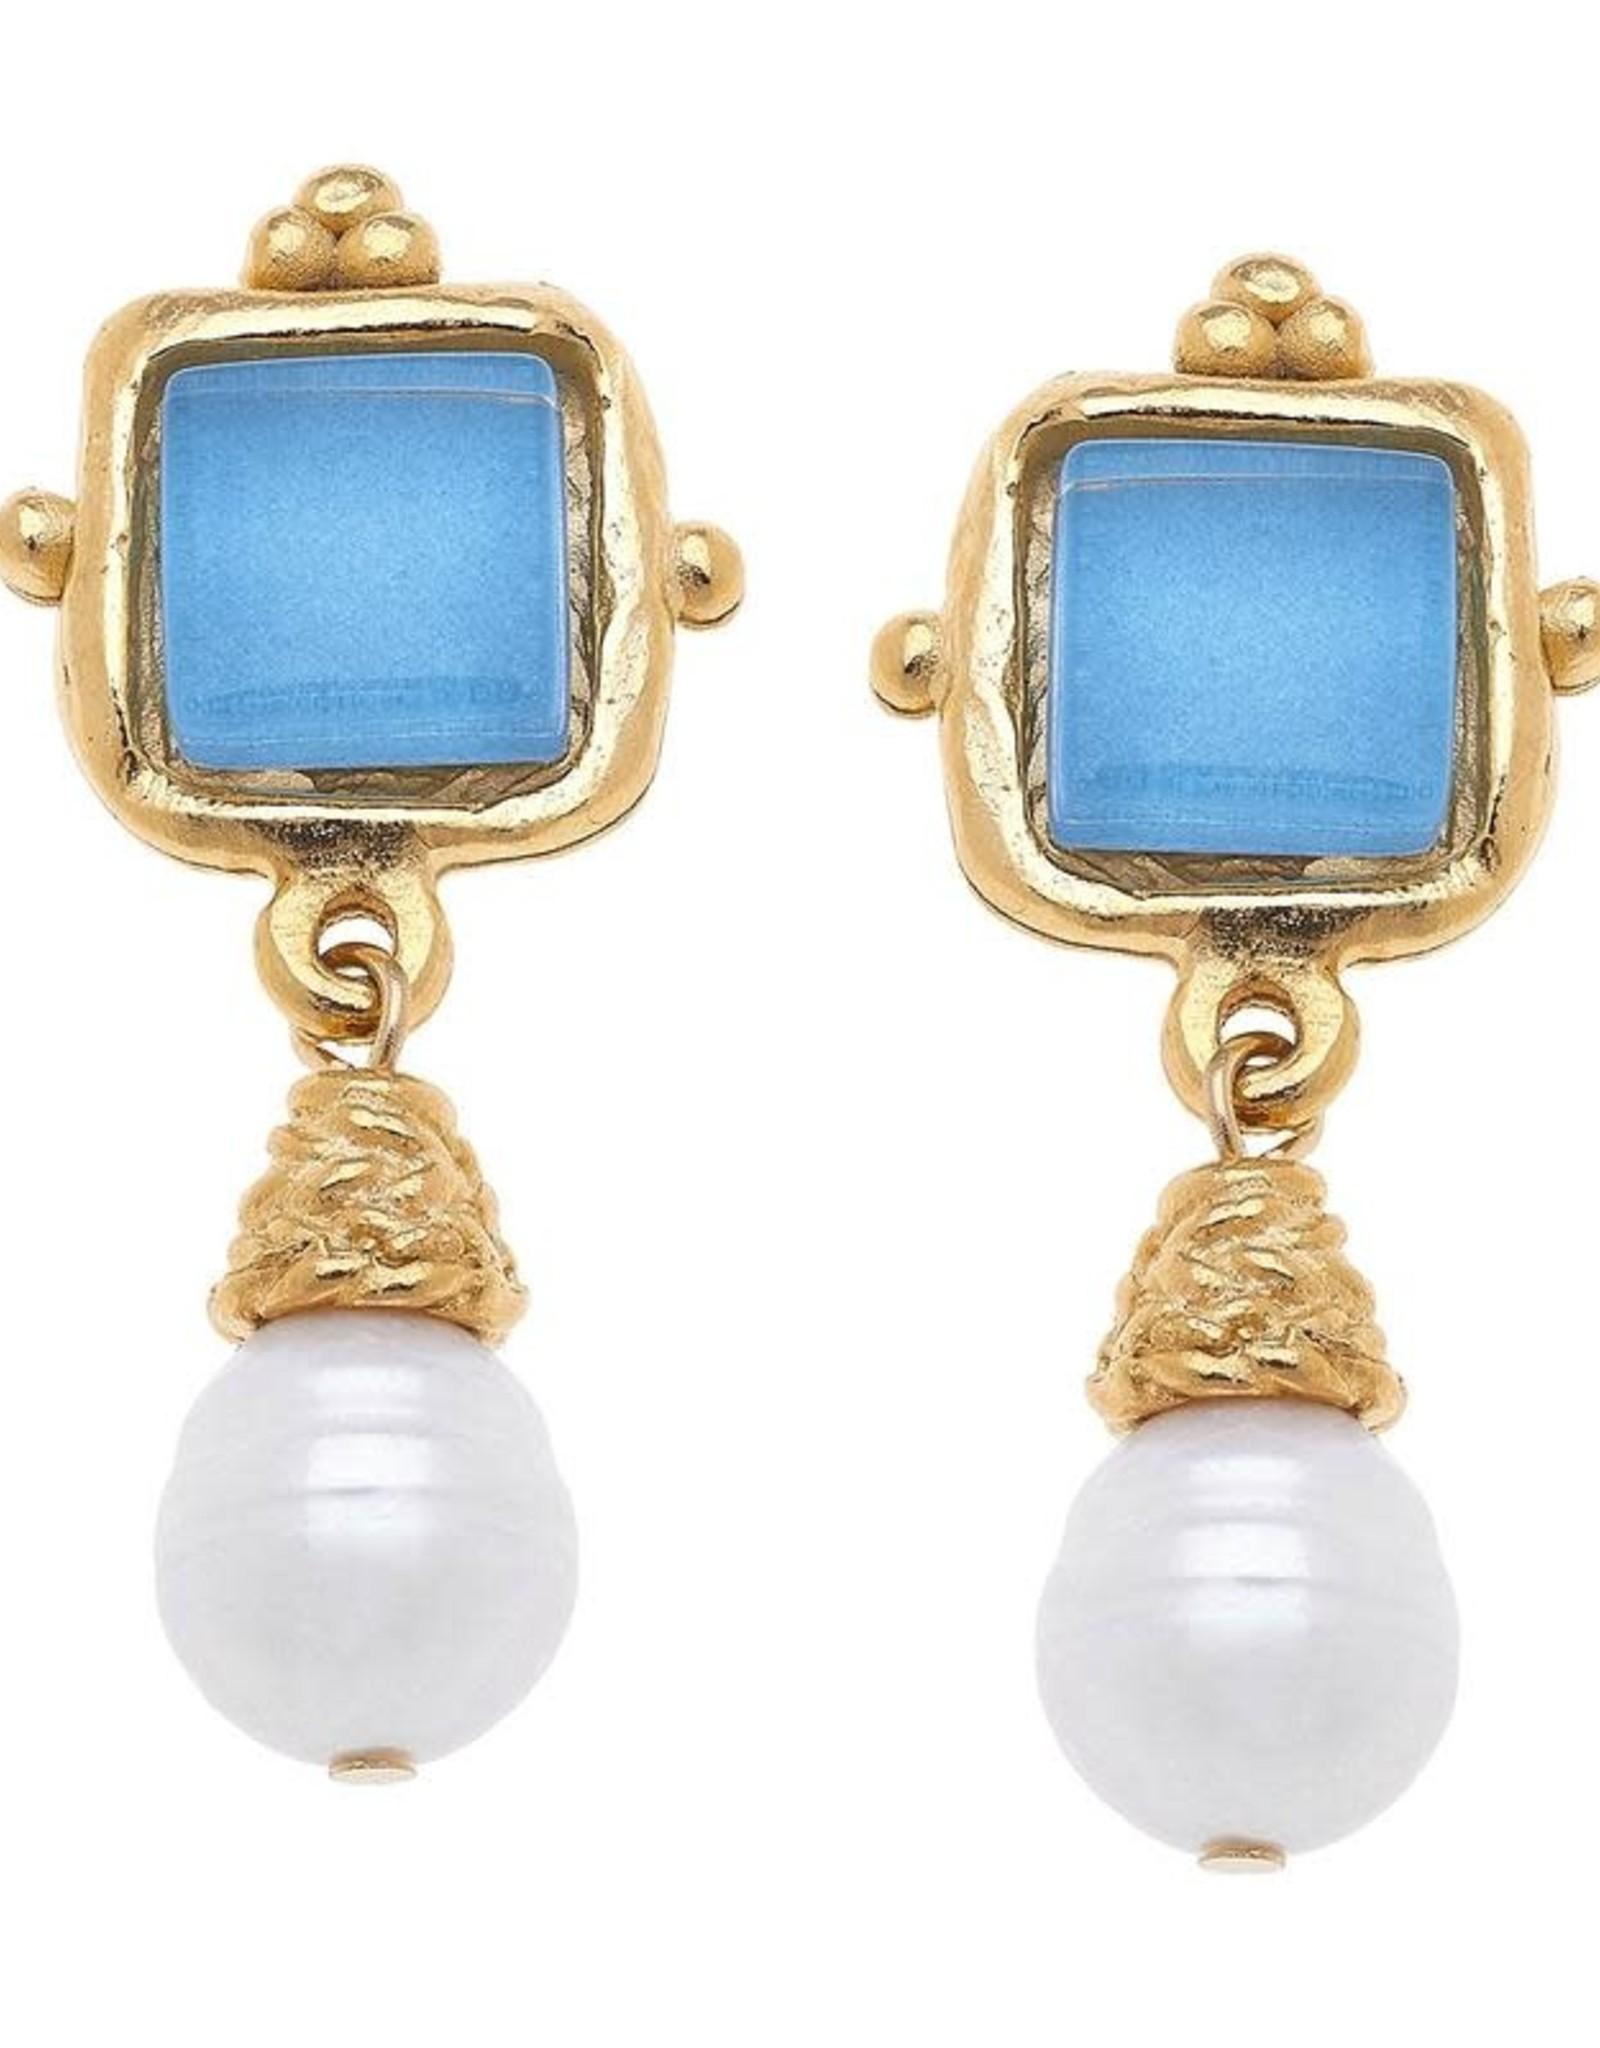 Susan Shaw Shaw Earrings GOLD Square/BLUE Glass/Pearl Drop CLIP-ON